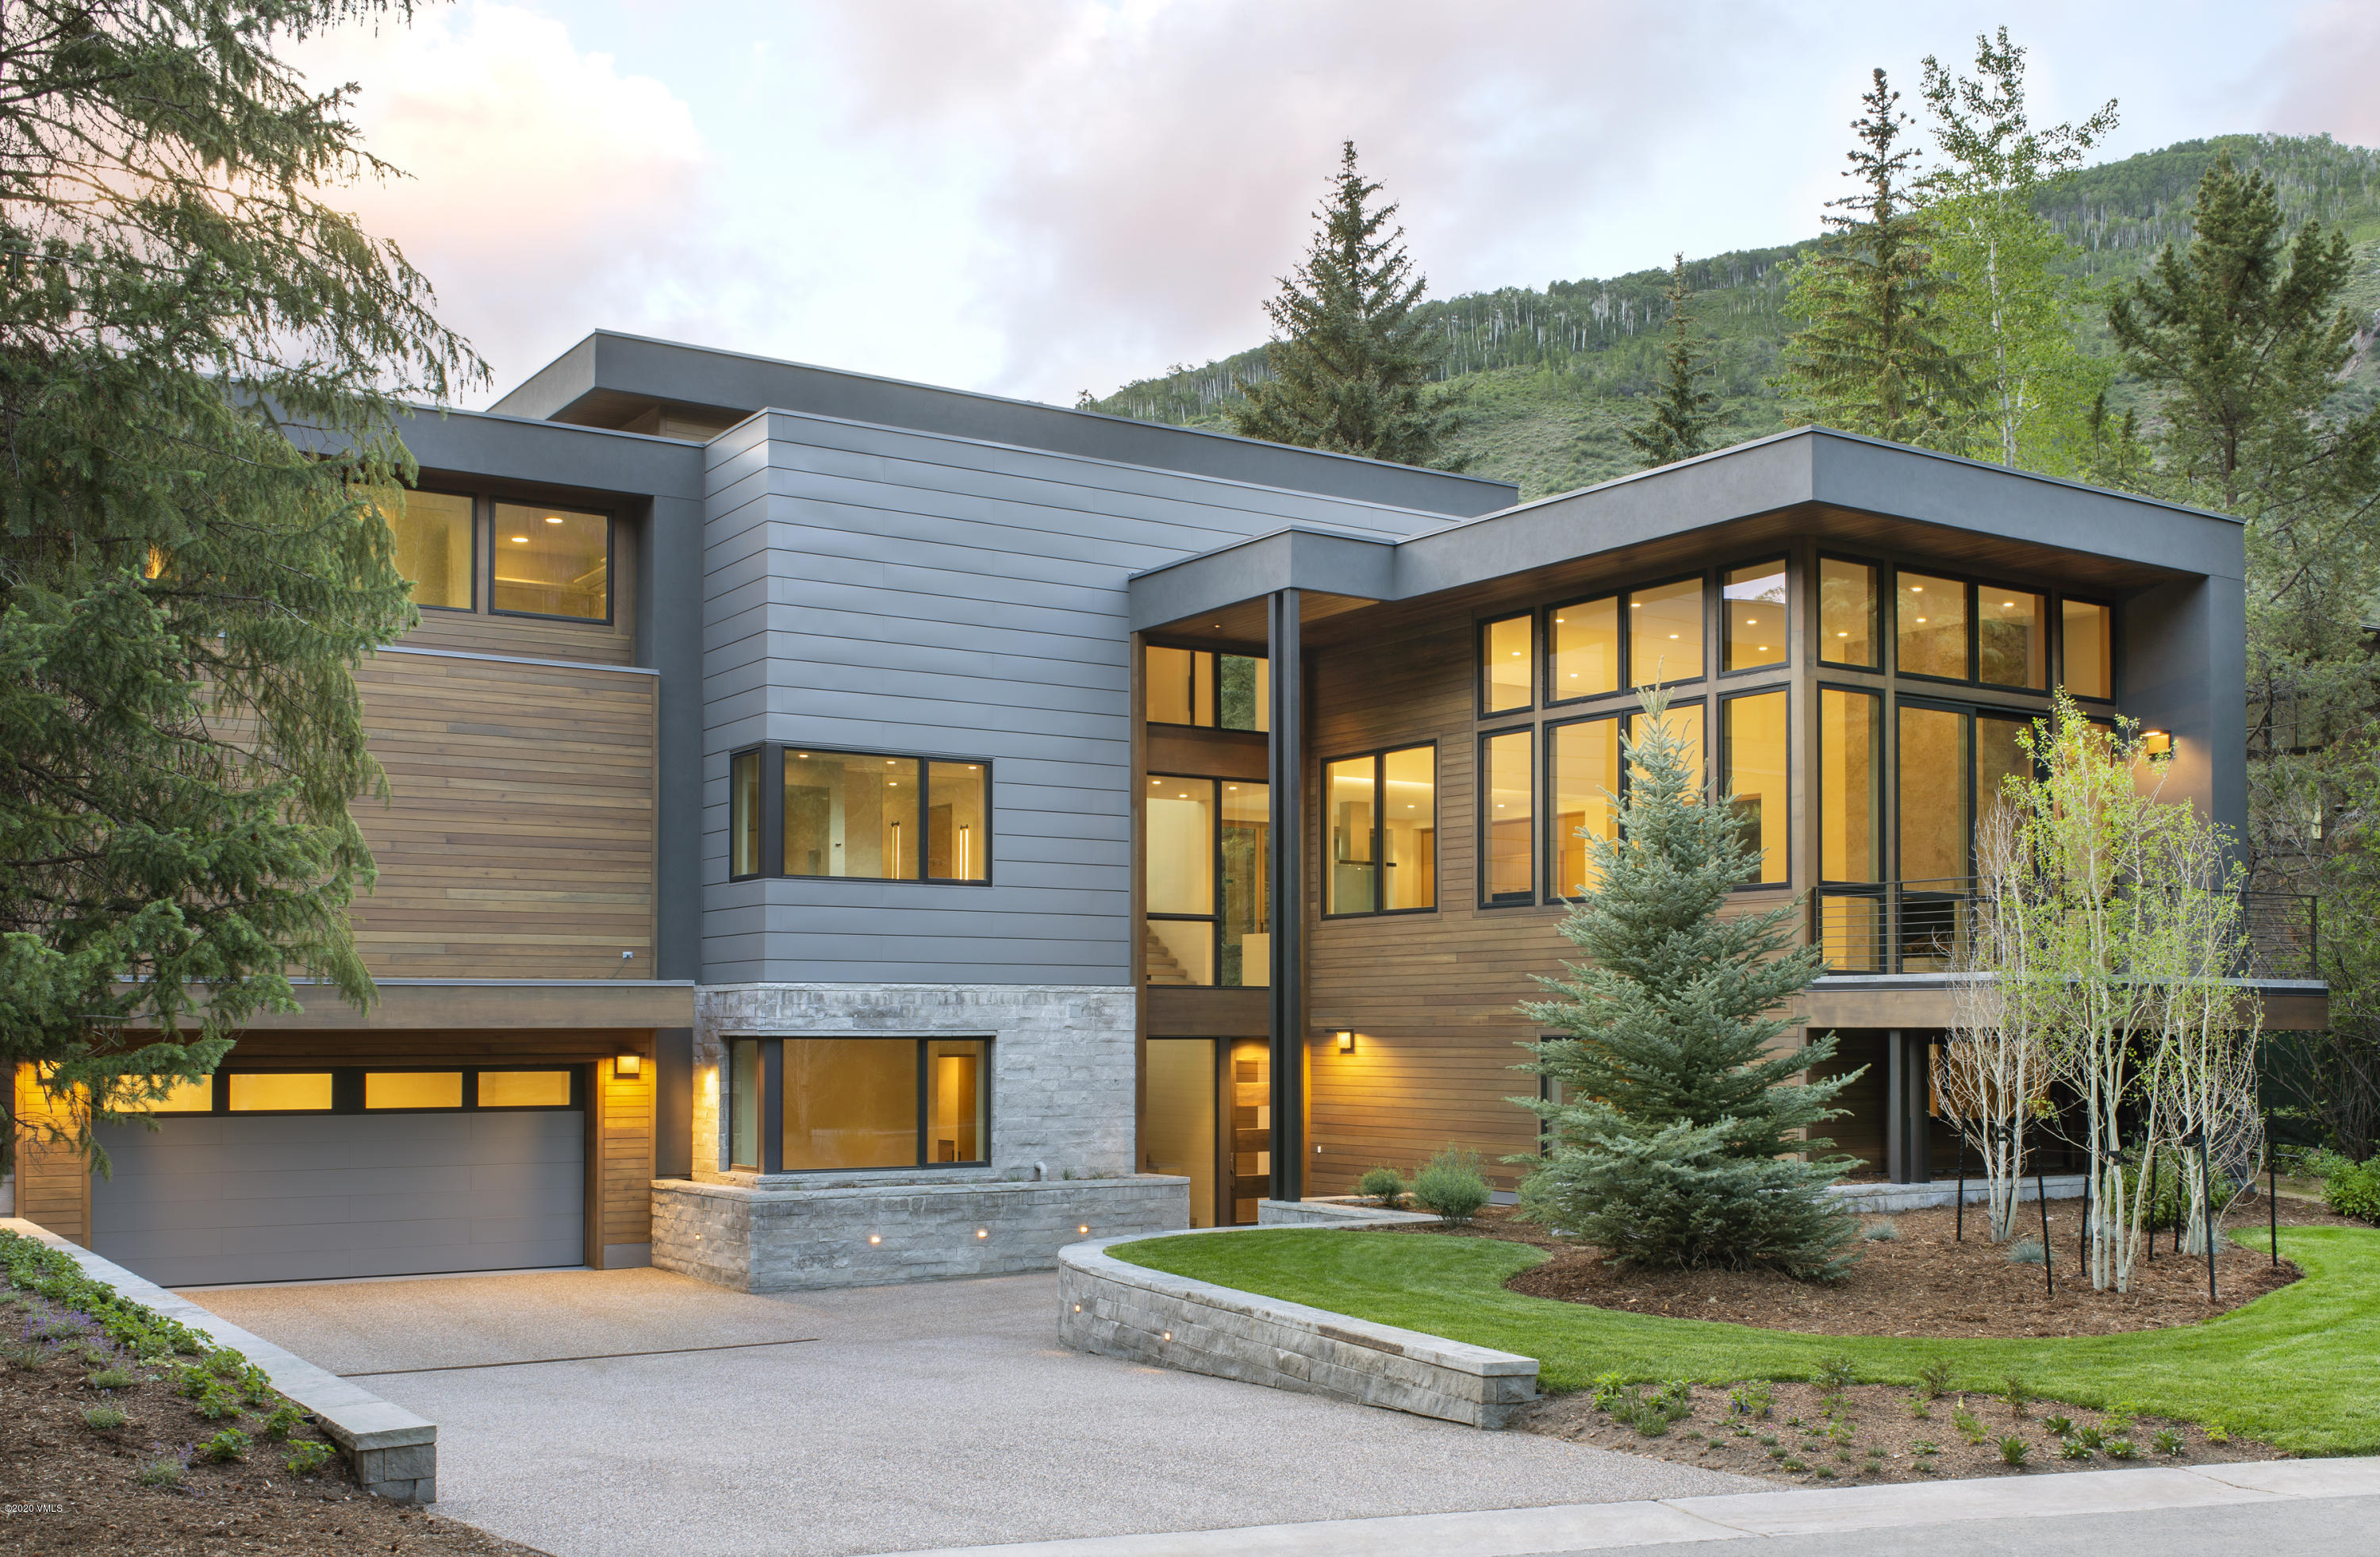 Beautiful, contemporary new construction on the Vail Golf Course. Enjoy the tranquil views from the floor to ceiling windows in the Living Room, as well as the terrace off the kitchen with a recessed hot tub. Wolf & Subzero package, radiant in-floor heating, zoned AC, snowmelt driveway. Enjoy the short walk to Vail Village or catch a ride on the Golf Course Bus Route for easy access. Secondary side of the duplex, with the Primary (1012 Eagles Nest Circle) available as well.